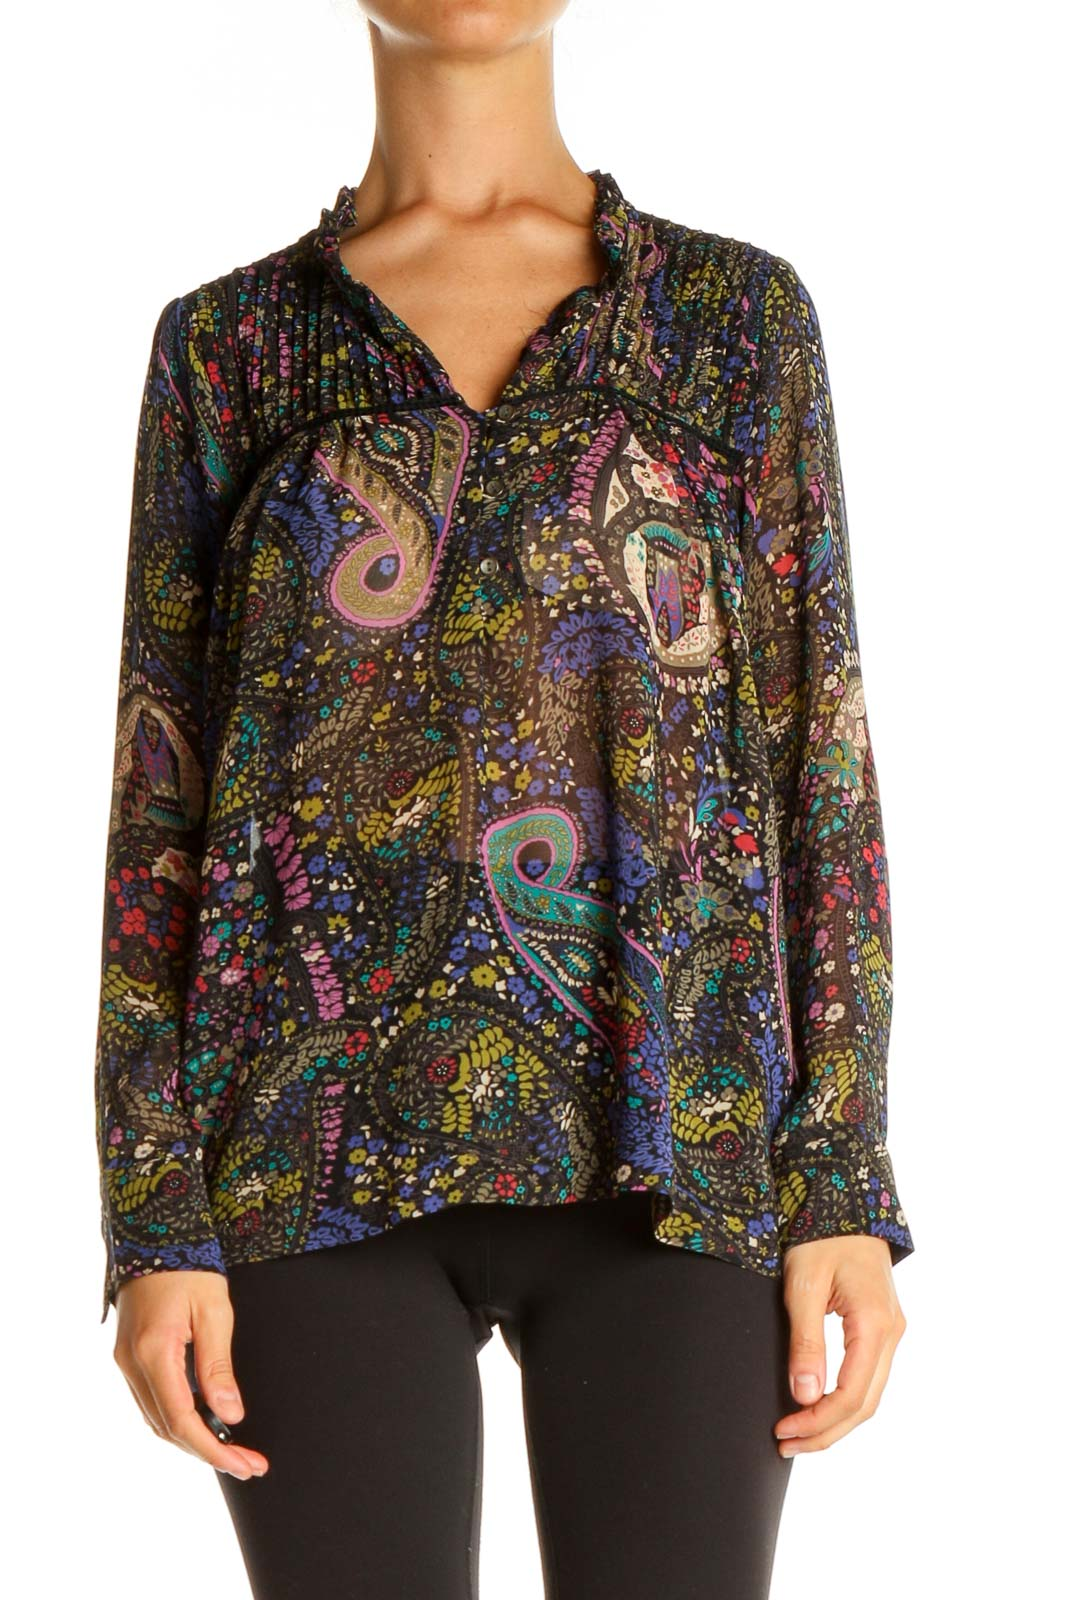 Brown Paisley Bohemian Shirt Front